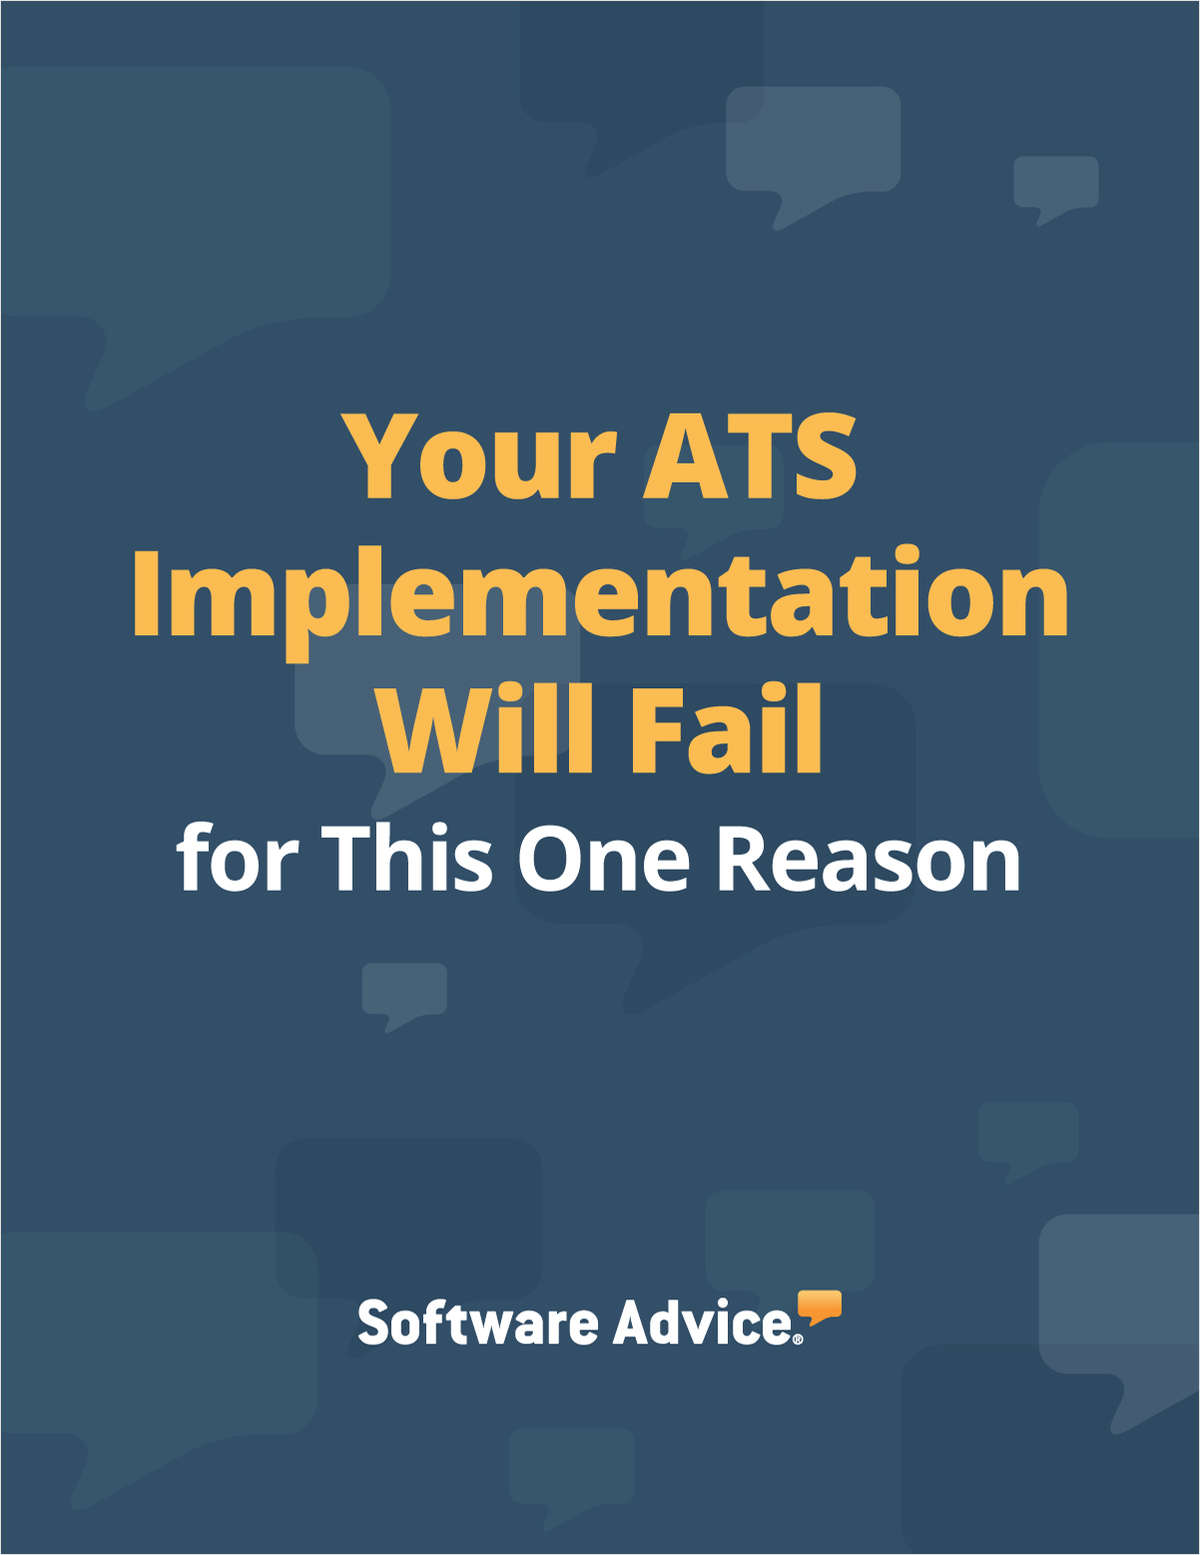 Your ATS Implementation Will Fail for This One Reason